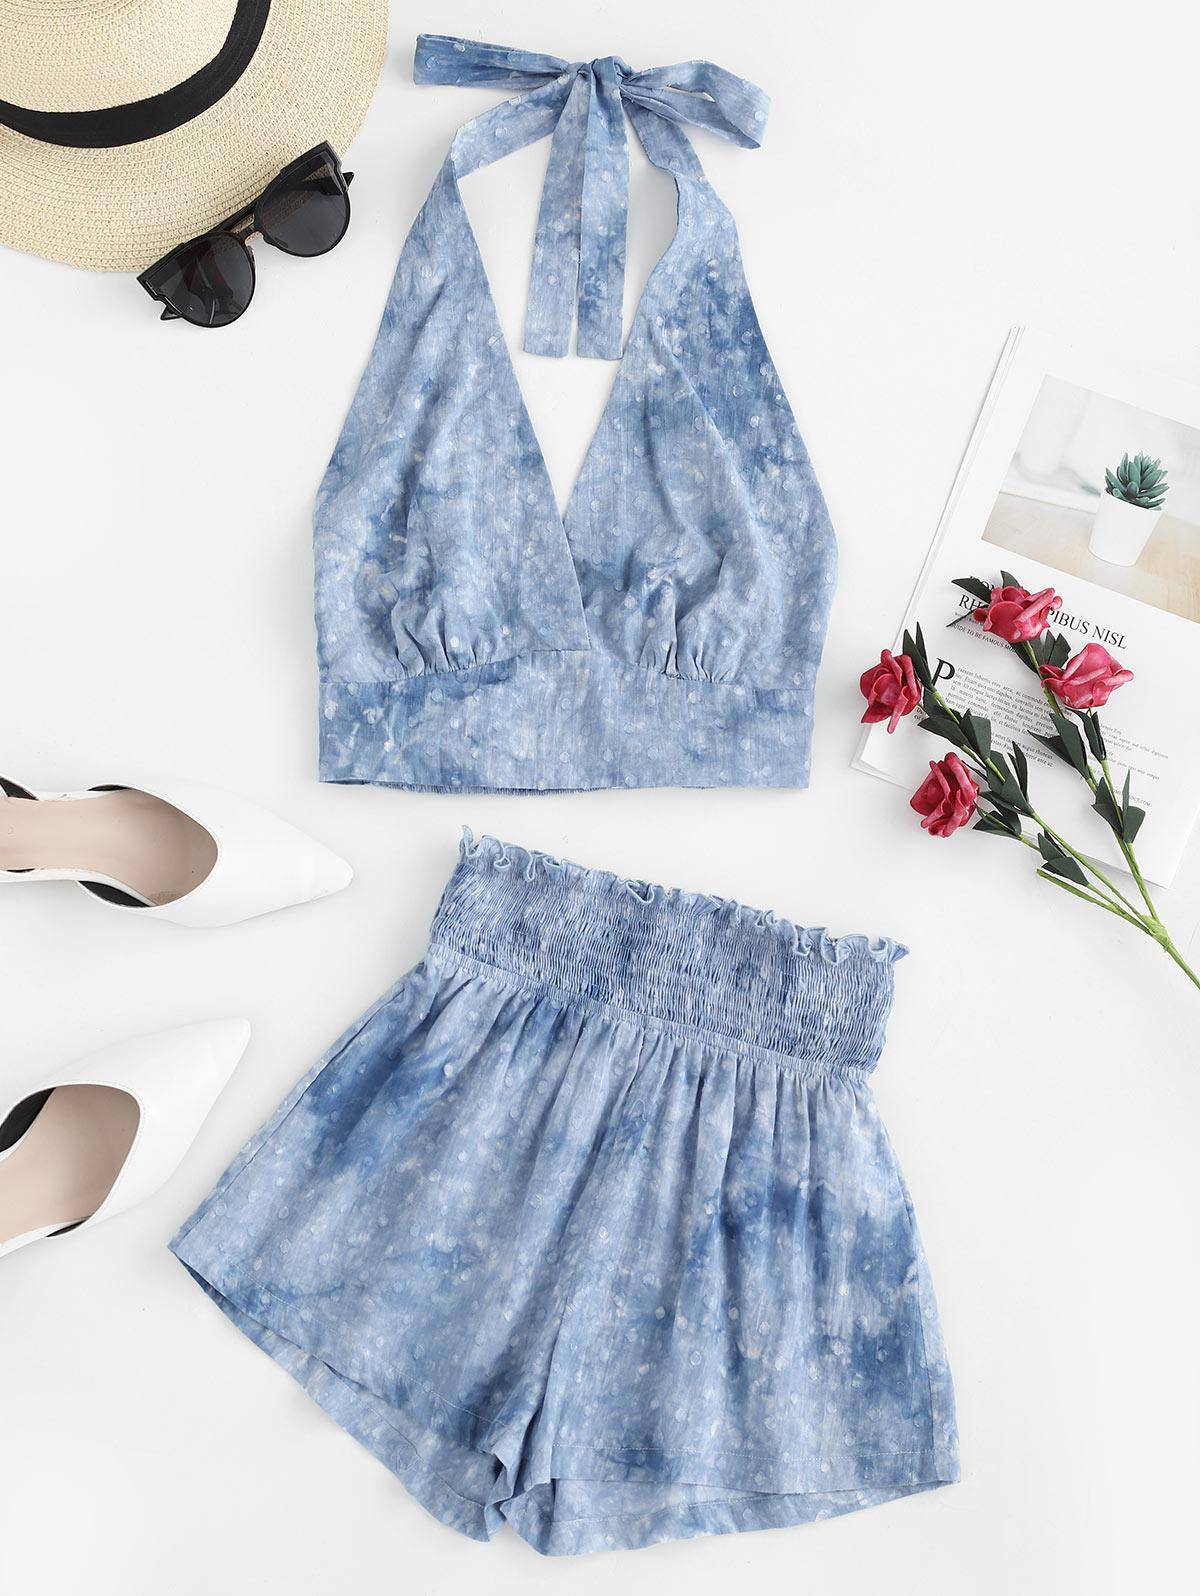 ZAFUL Smocked Tie Dye Crop Halter Top and Shorts Set, Mist blue